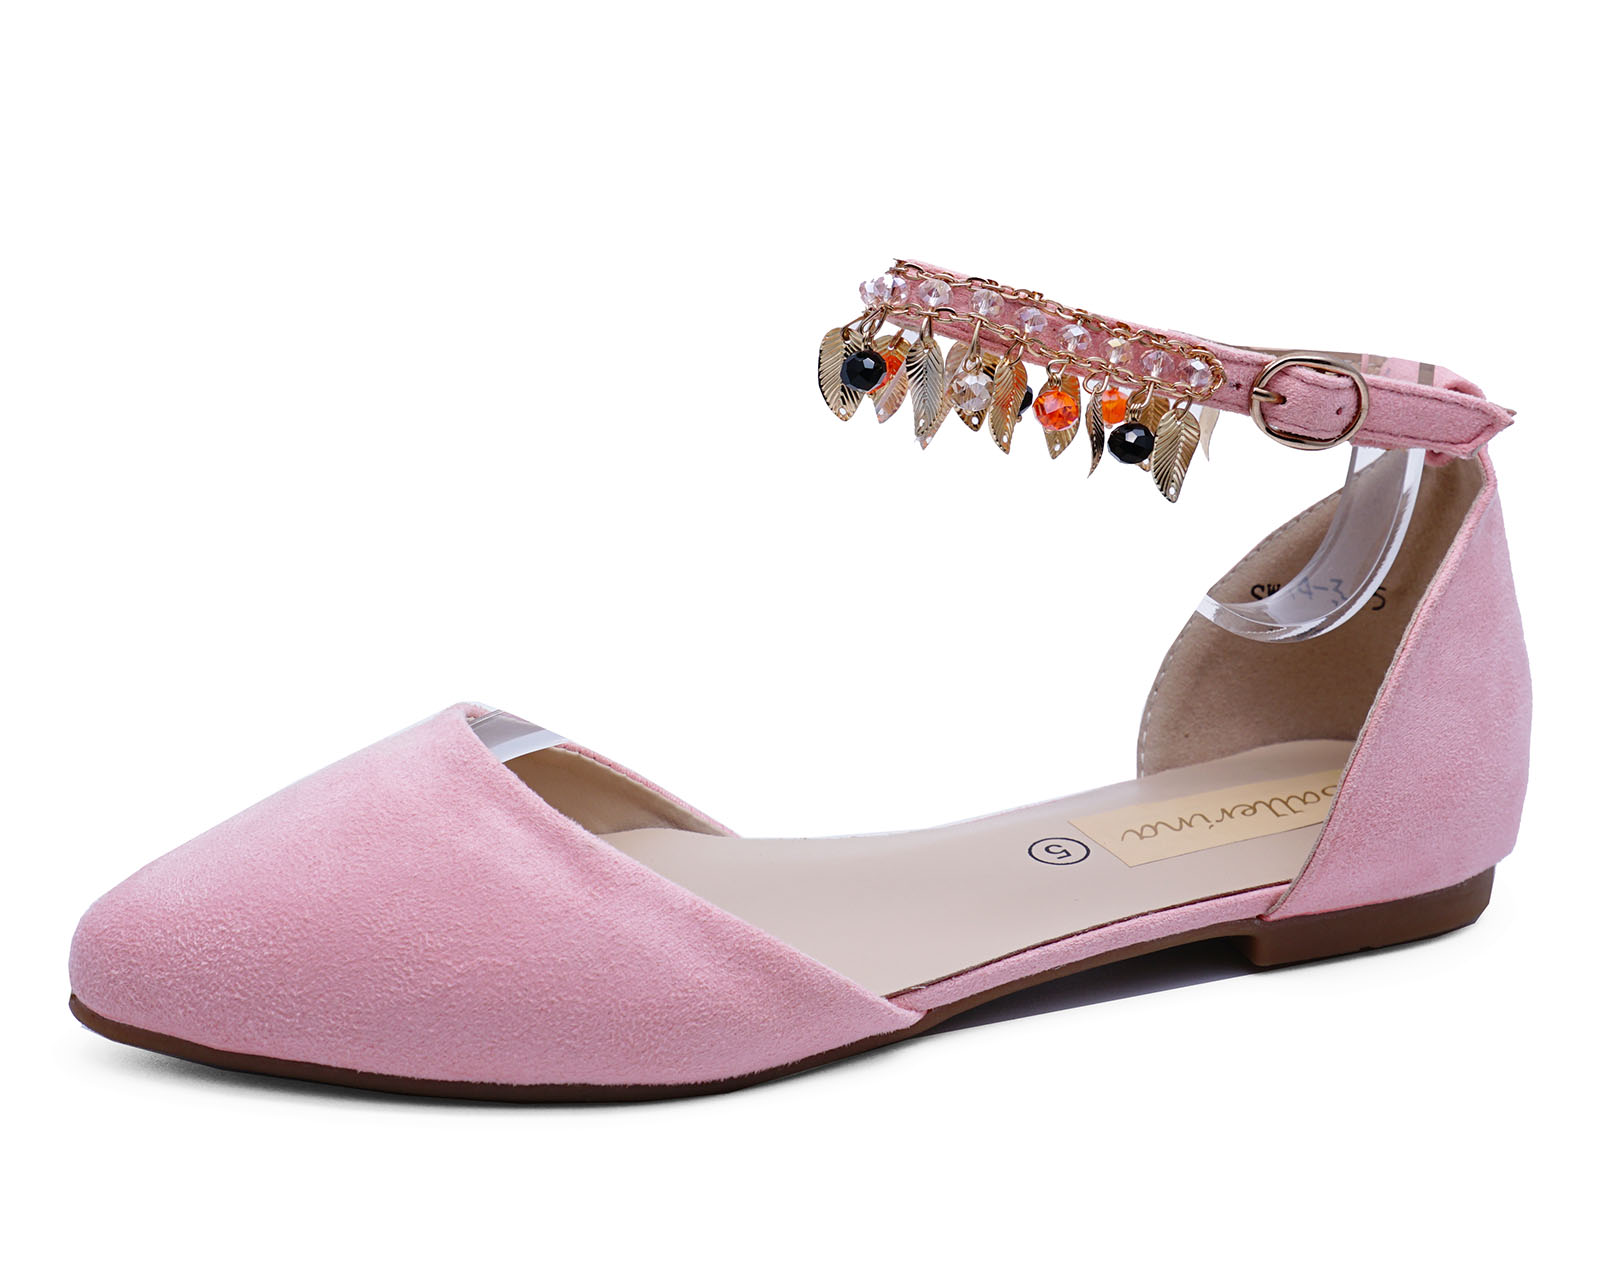 WOMENS FLAT PINK SLIP-ON DOLLY SHOES